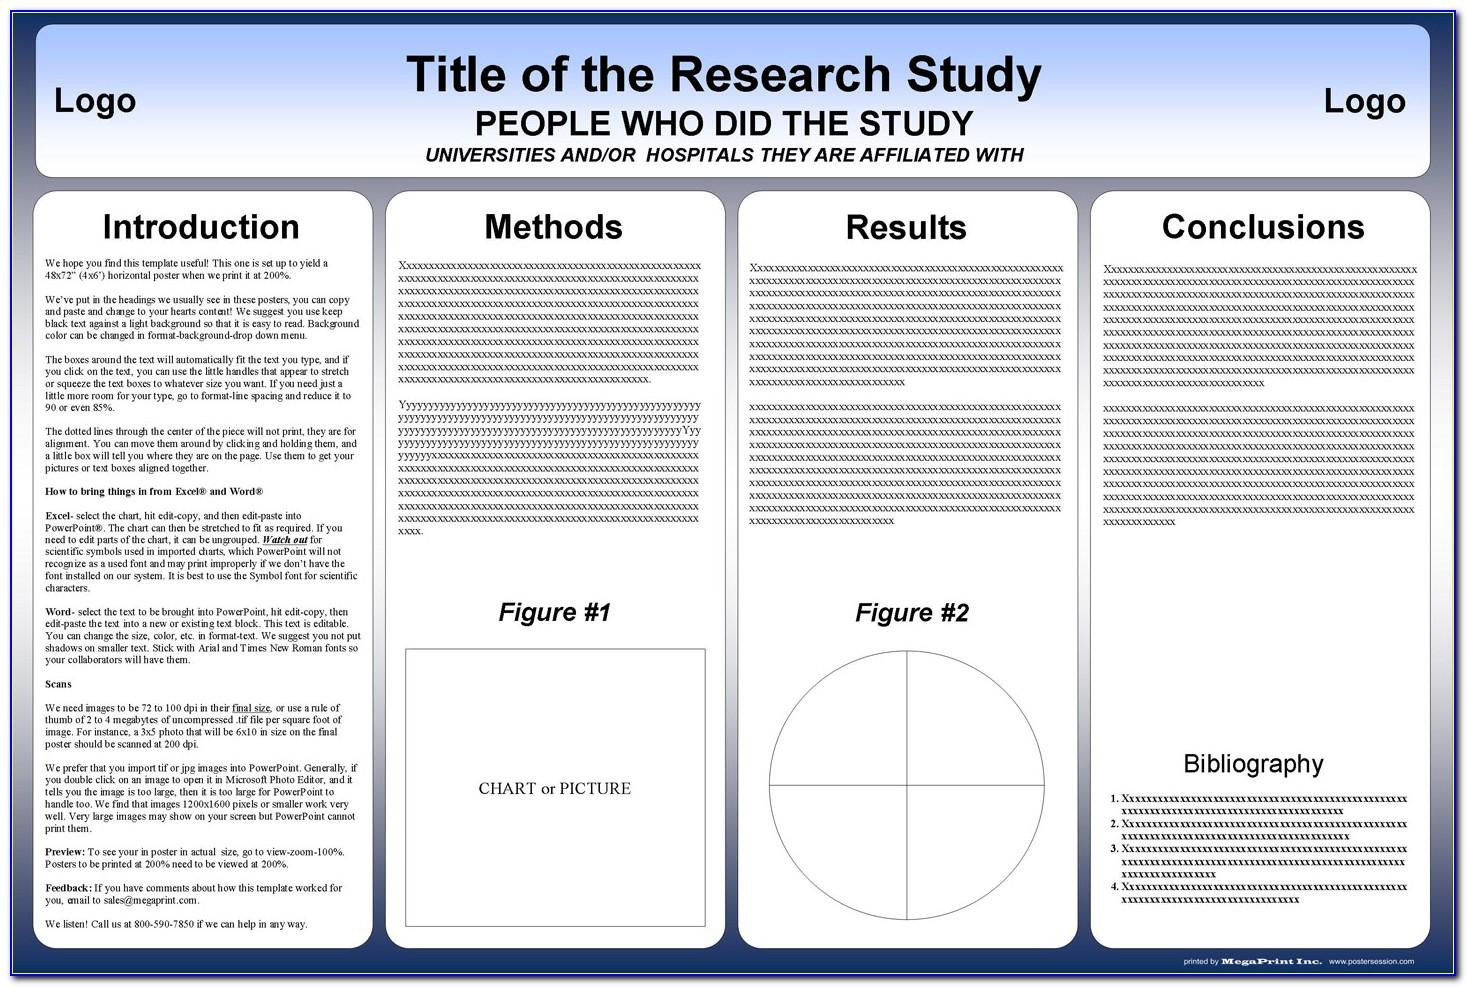 Research Poster Template Free Download Word